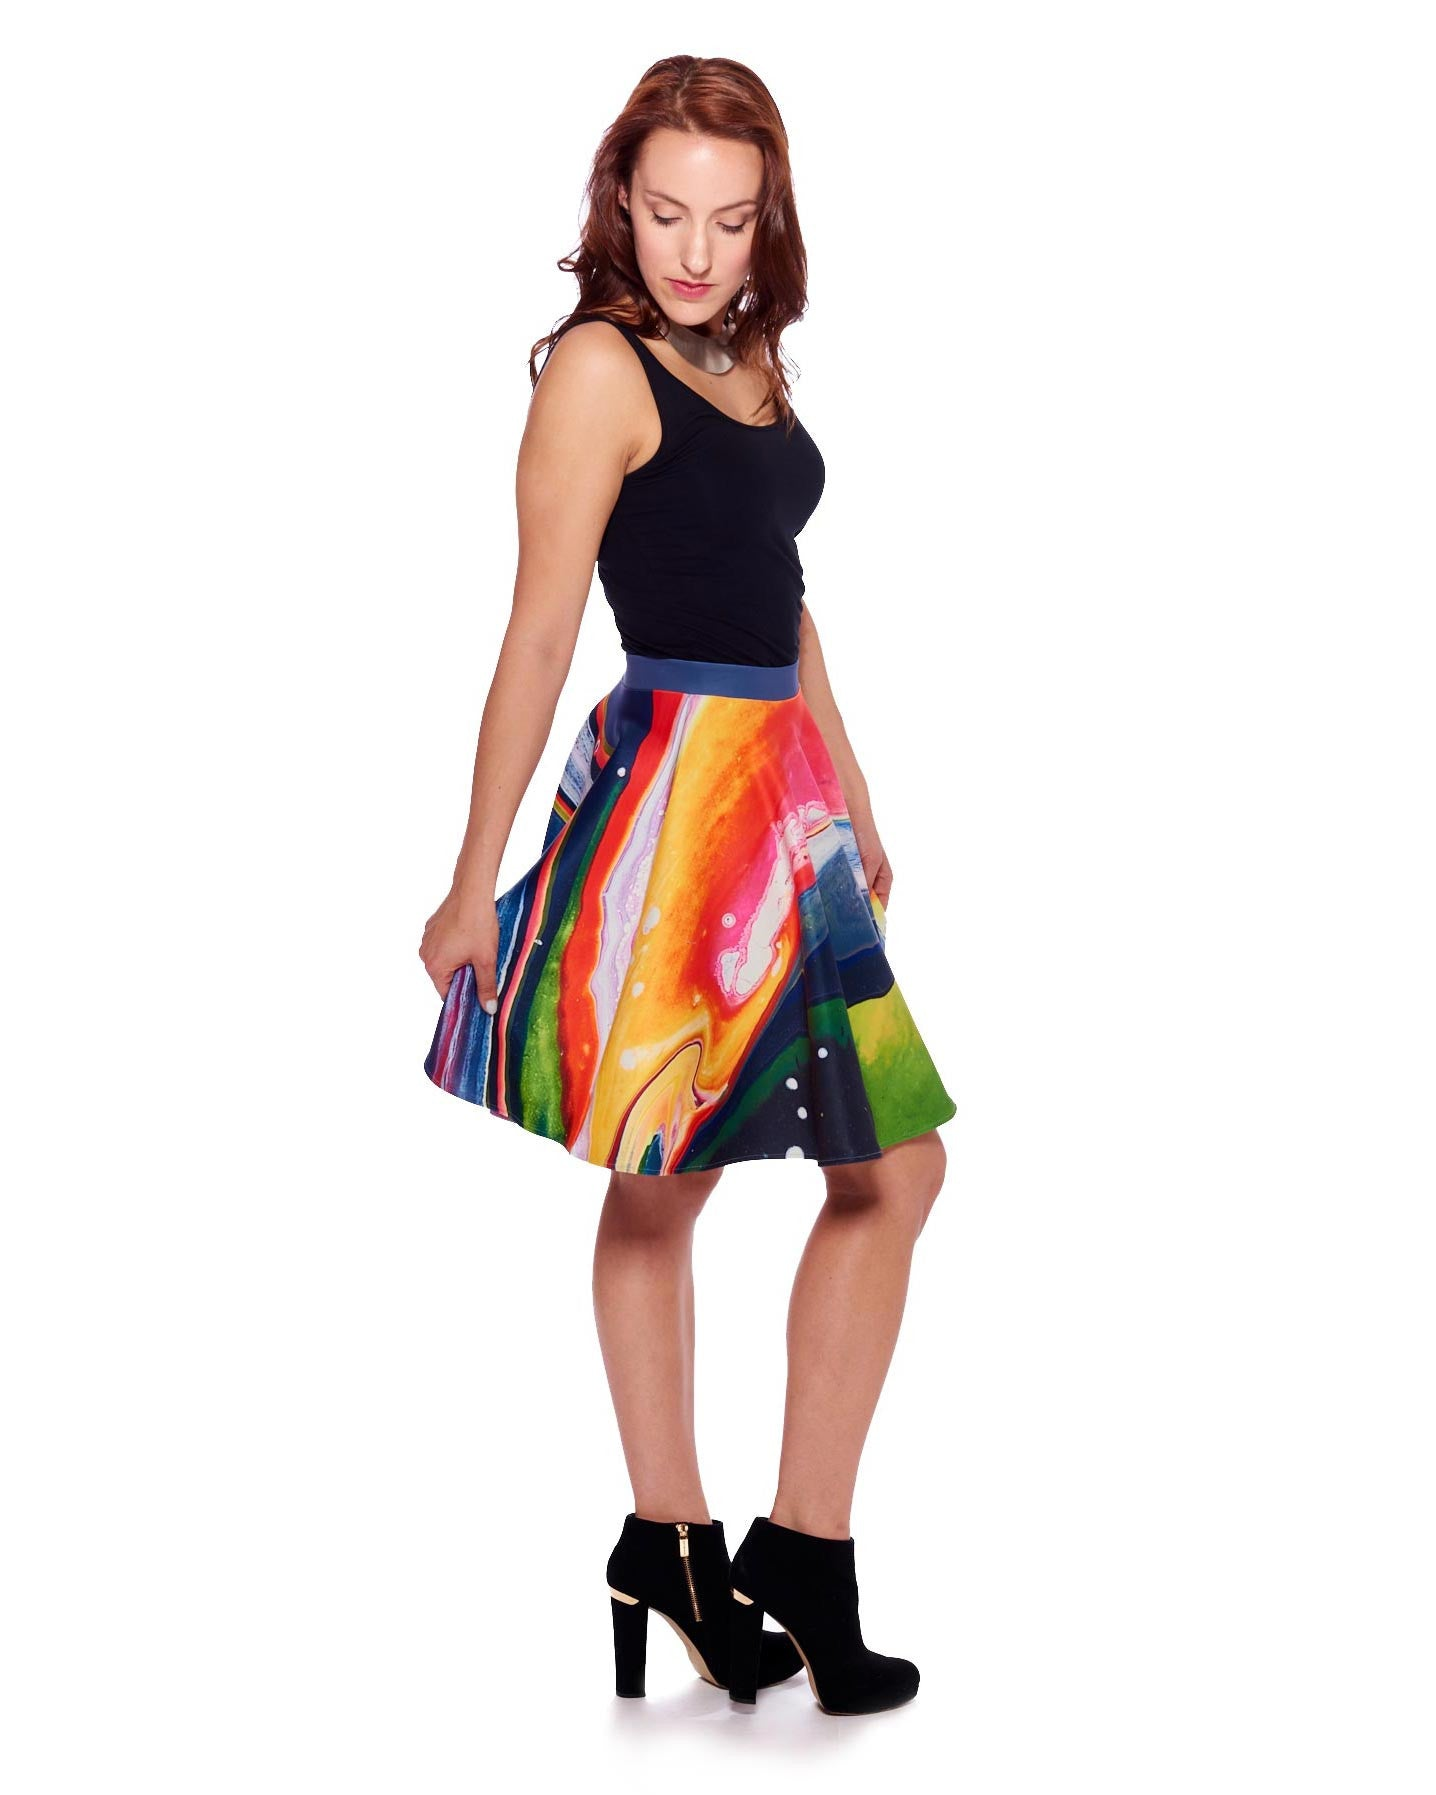 New Planet II Circle Skirt - Nuvango Gallery & Goods - 1